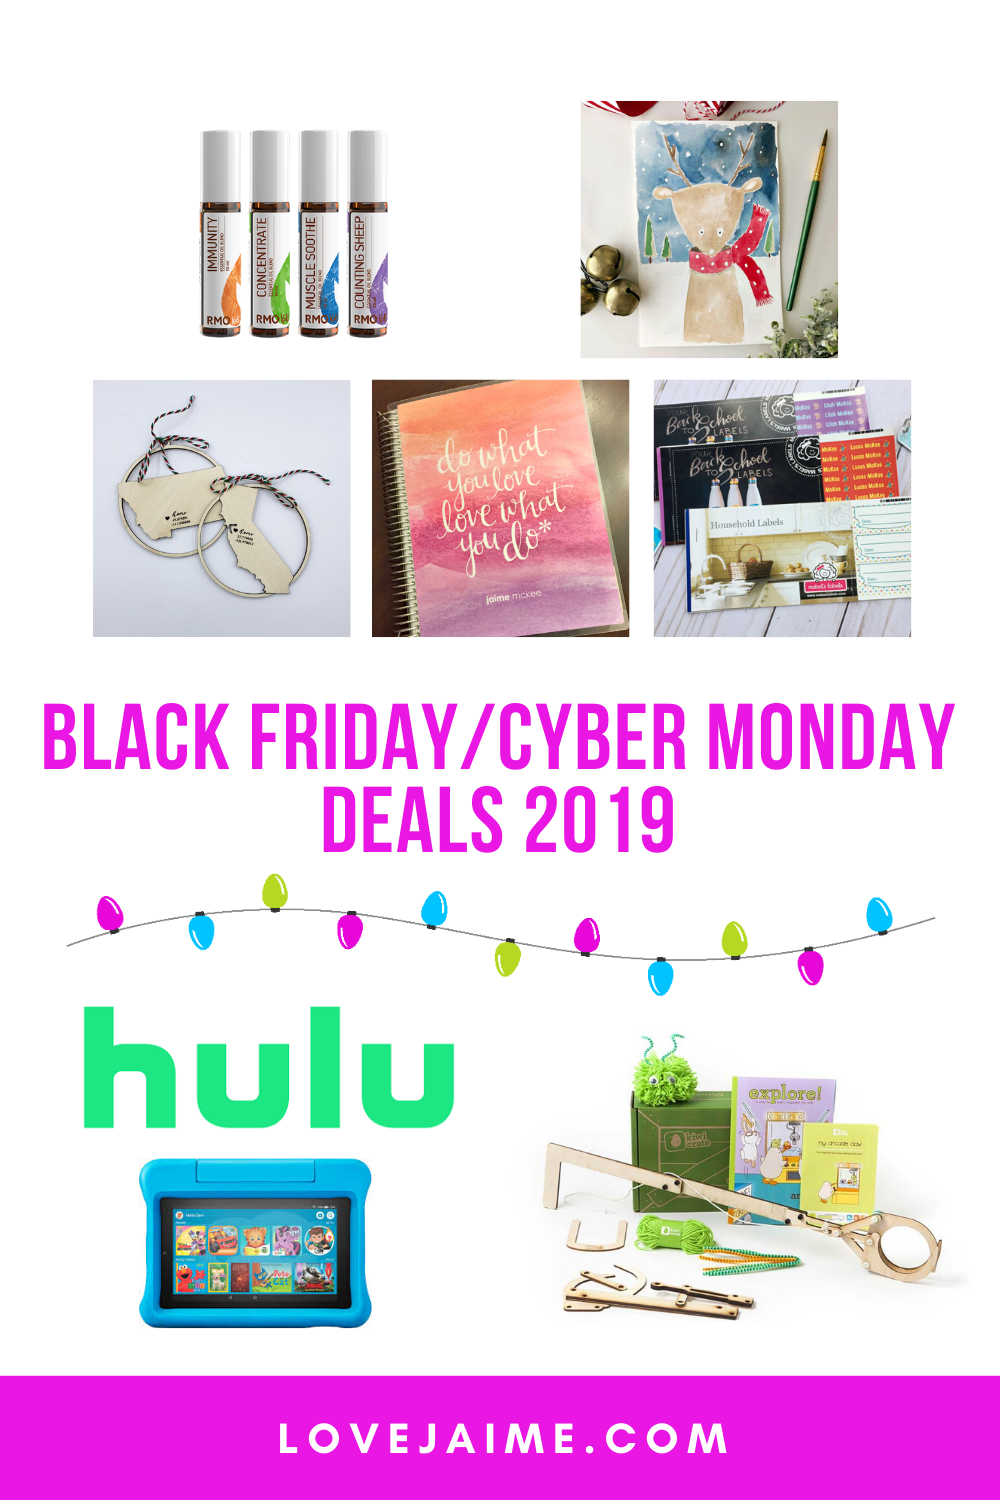 From 2020 planners to essential oils and even Hulu subscriptions, here is a rundown of my favorite Black Friday/Cyber Monday deals!